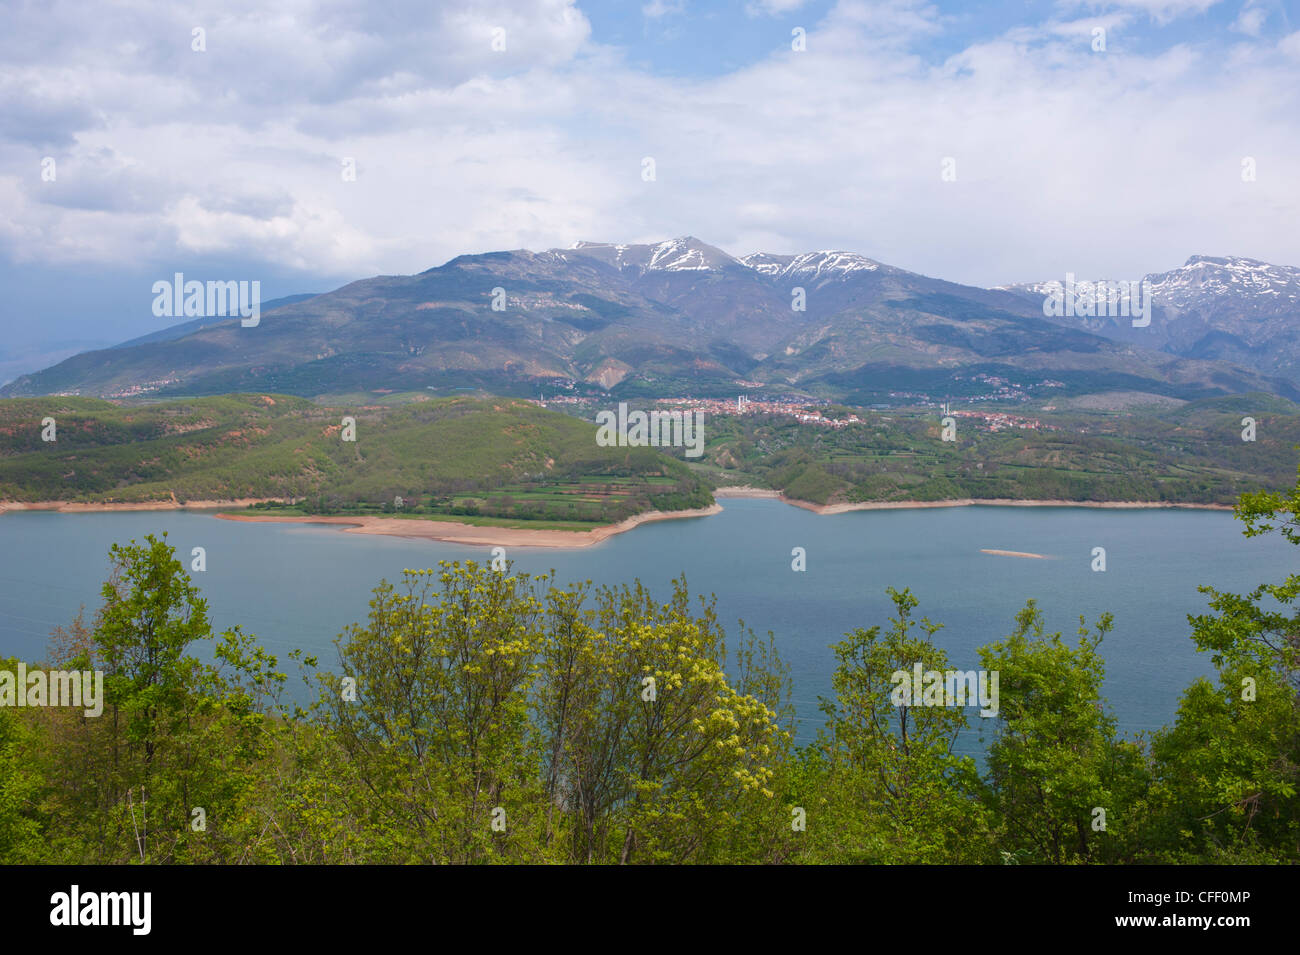 Artificial lake in the Mavrovo National Park, Macedonia, Europe - Stock Image